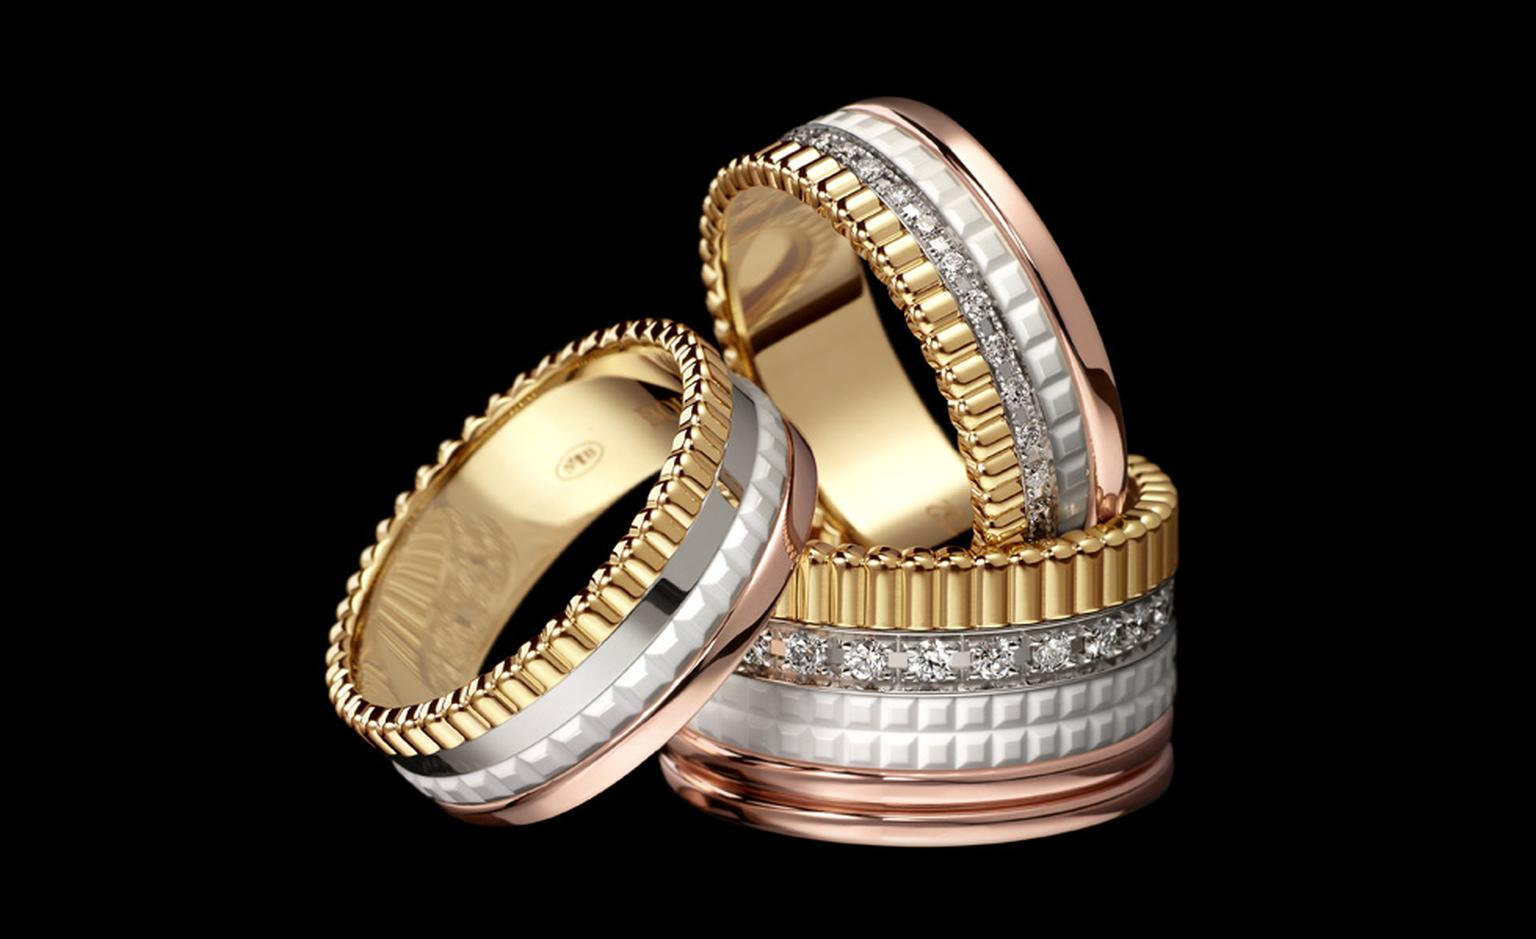 The new Boucheron Quatre bridal rings featuring white ceramic.